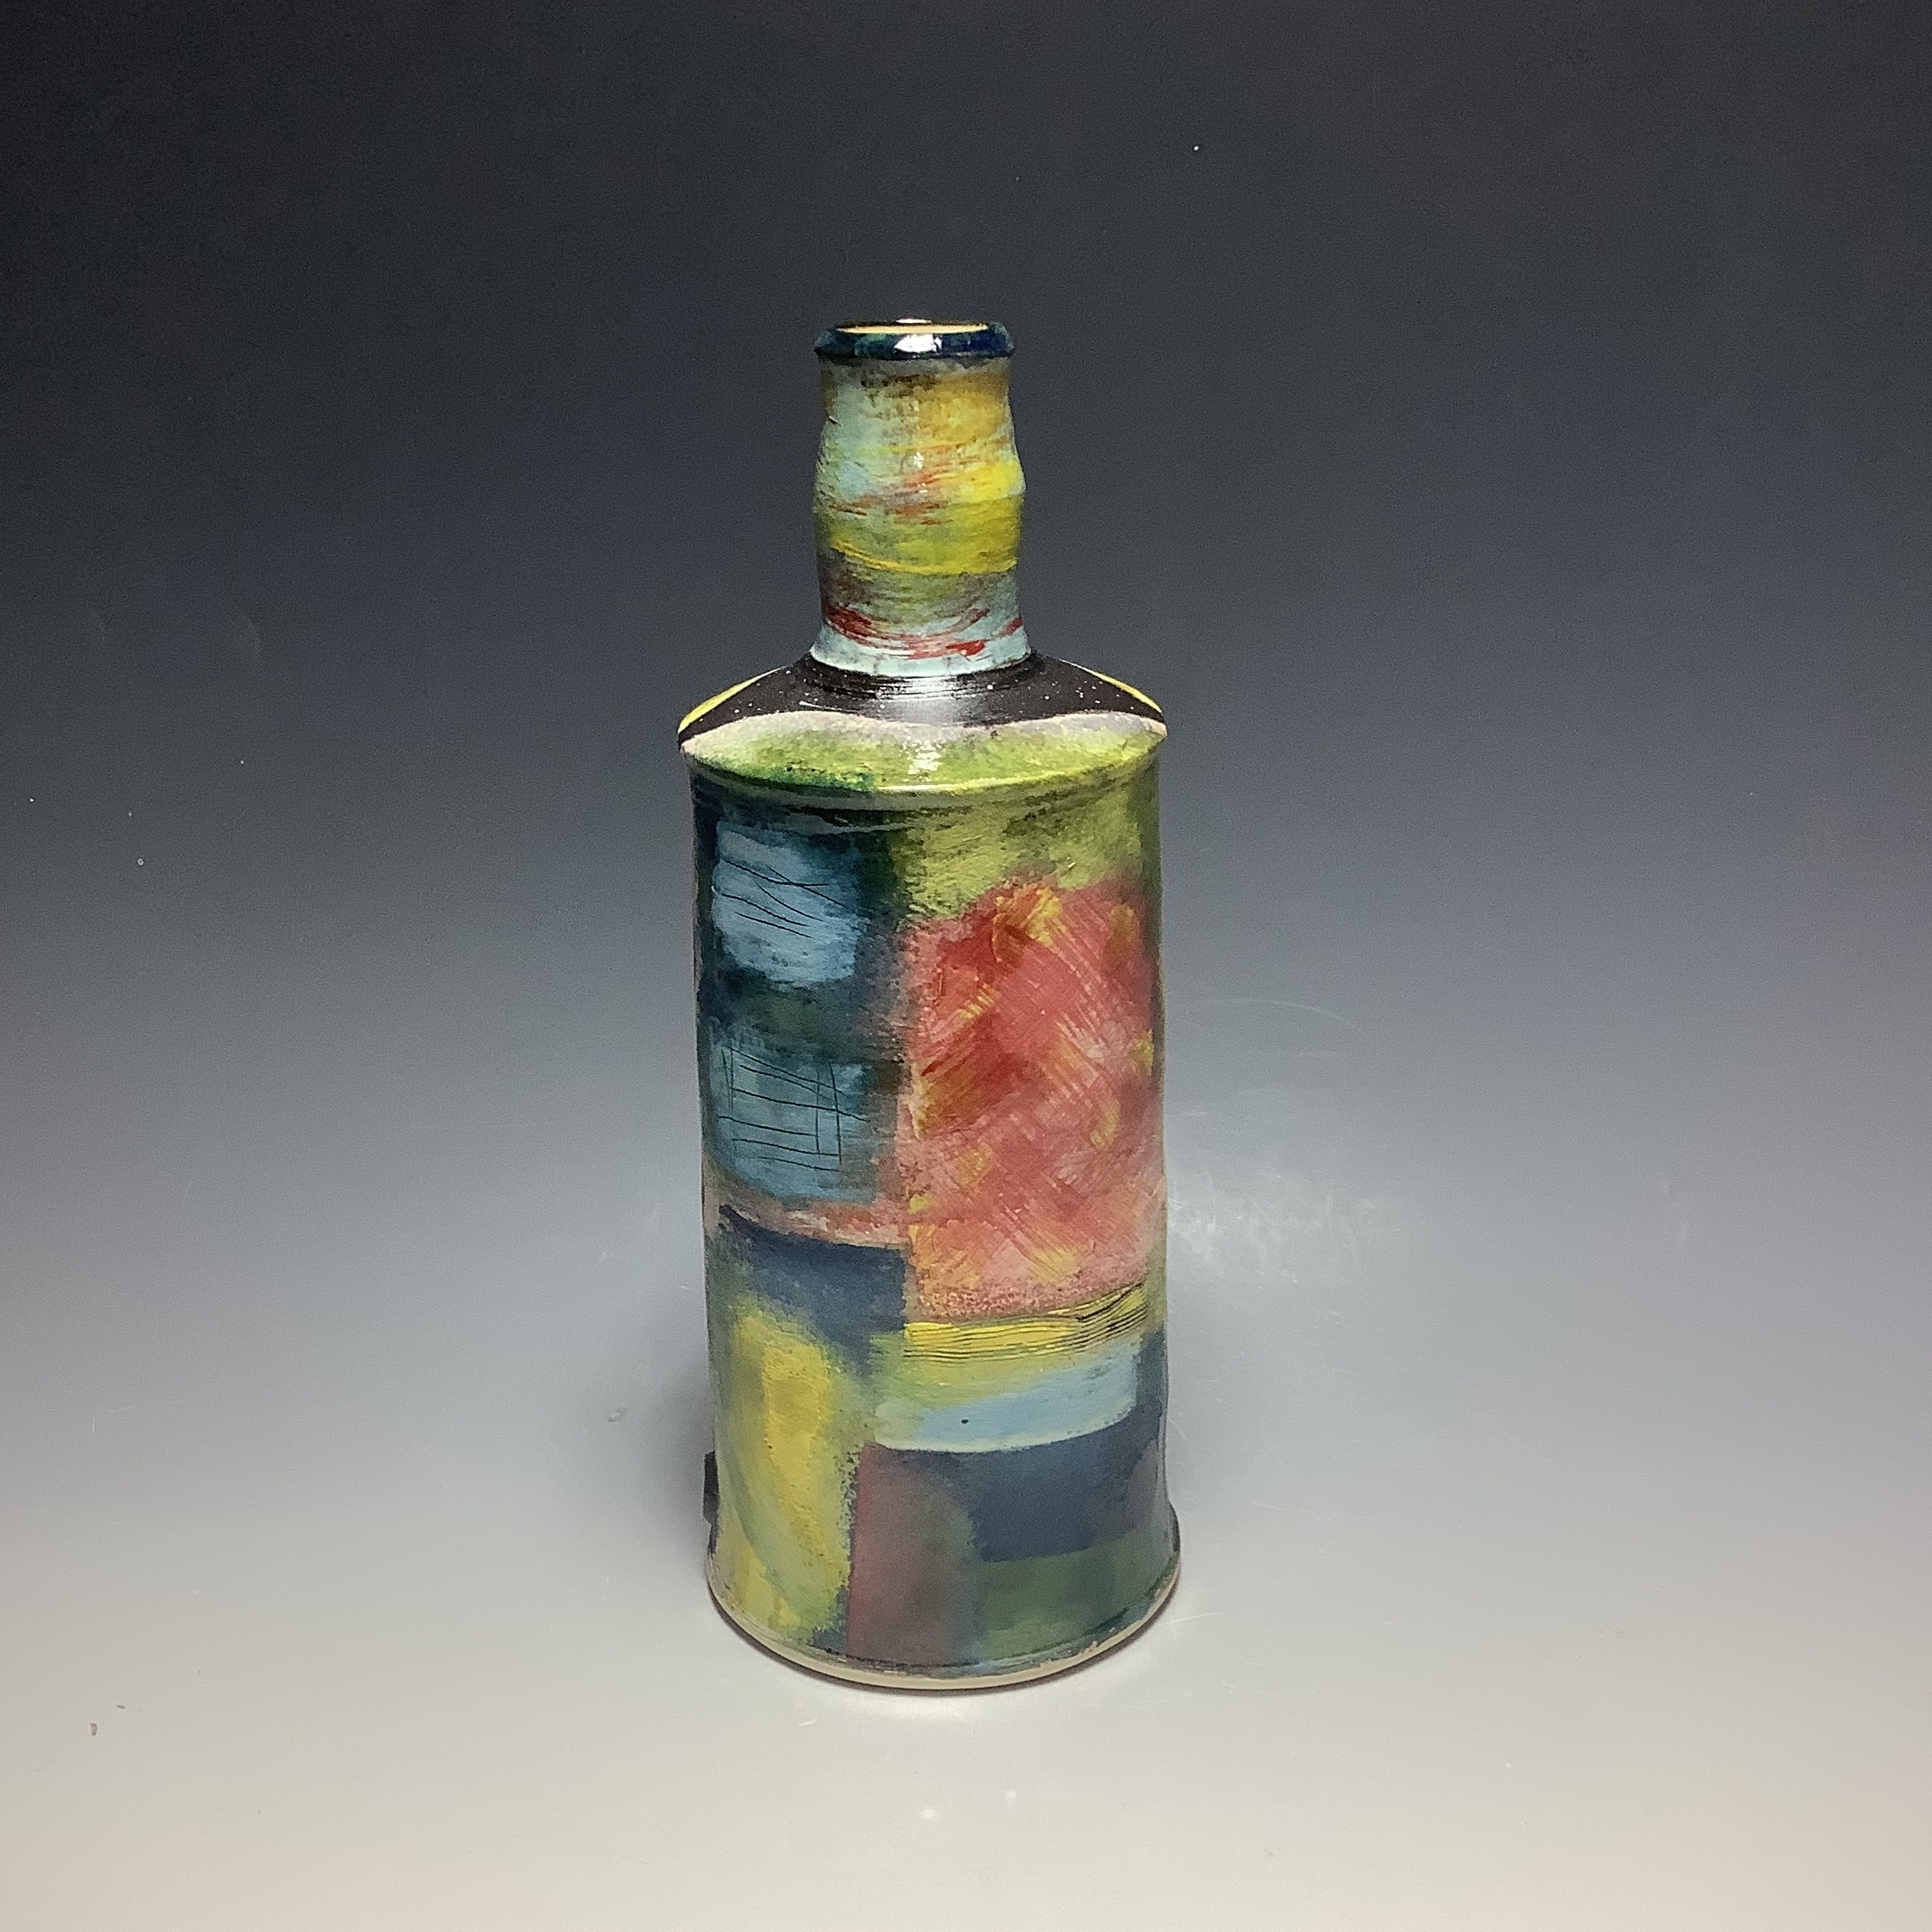 "<span class=""link fancybox-details-link""><a href=""/artists/100-john-pollex/works/6835-john-pollex-tall-bottle-2020/"">View Detail Page</a></span><div class=""artist""><strong>John Pollex</strong></div> b. 1941 <div class=""title""><em>Tall Bottle</em>, 2020</div> <div class=""signed_and_dated"">impressed with the artist's seal mark 'JP'</div> <div class=""medium"">white earthenware decorated with coloured slips</div> <div class=""dimensions"">h. 11 in</div><div class=""price"">£308.00</div><div class=""copyright_line"">Ownart: £30.80 x 10 Months, 0% APR</div>"